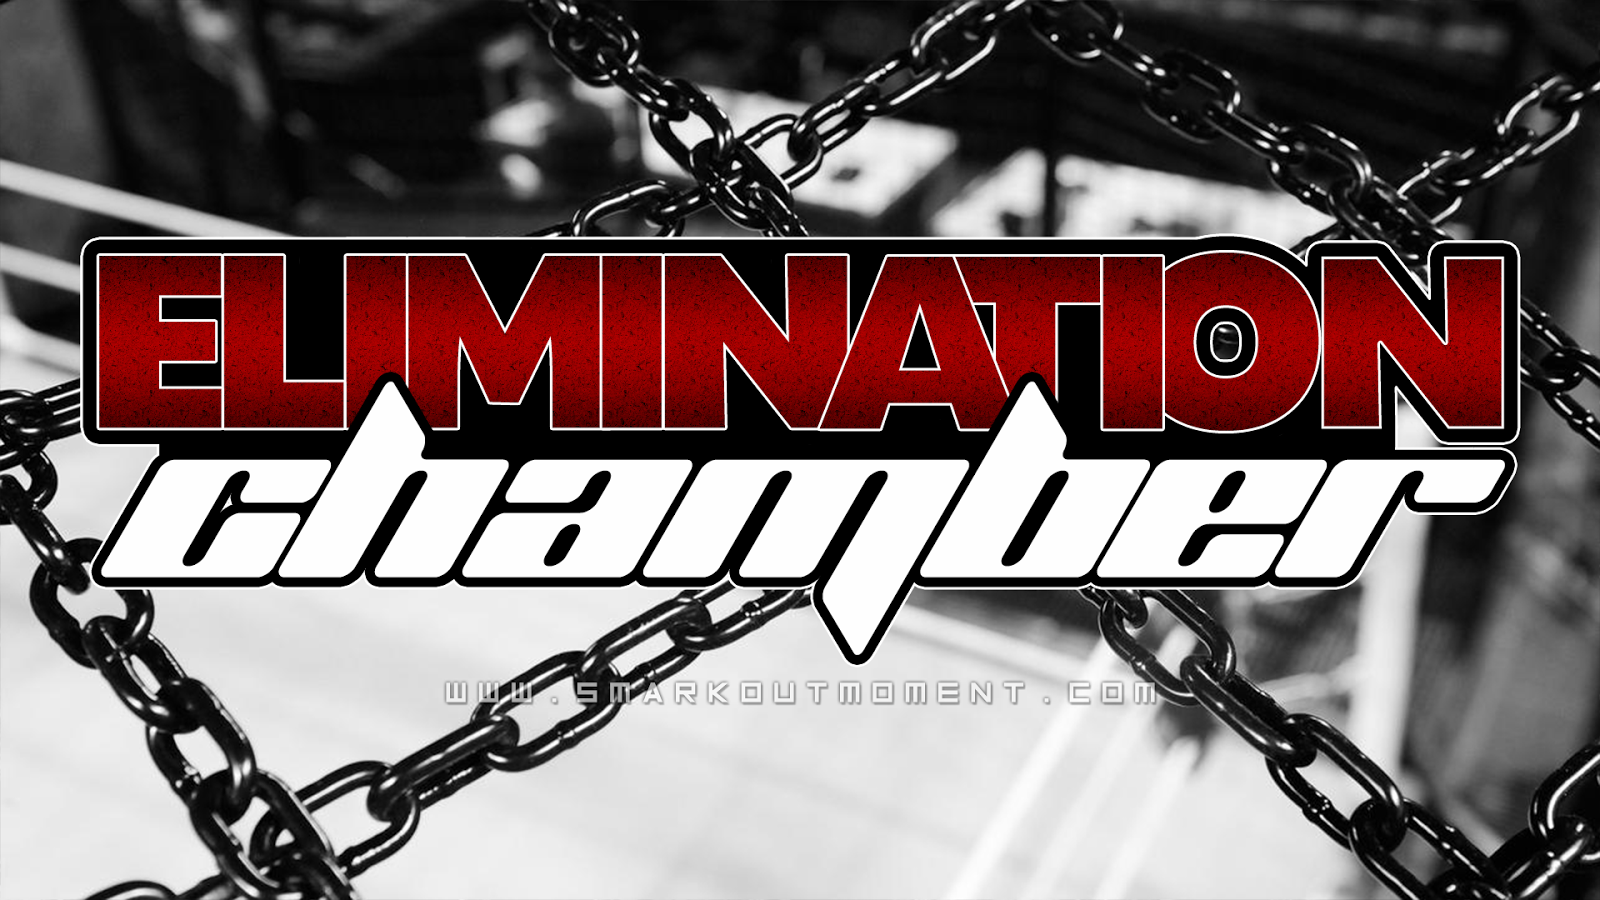 WWE Elimination Chamber PPV Wallpaper Posters and Logo Backgrounds 1600x900